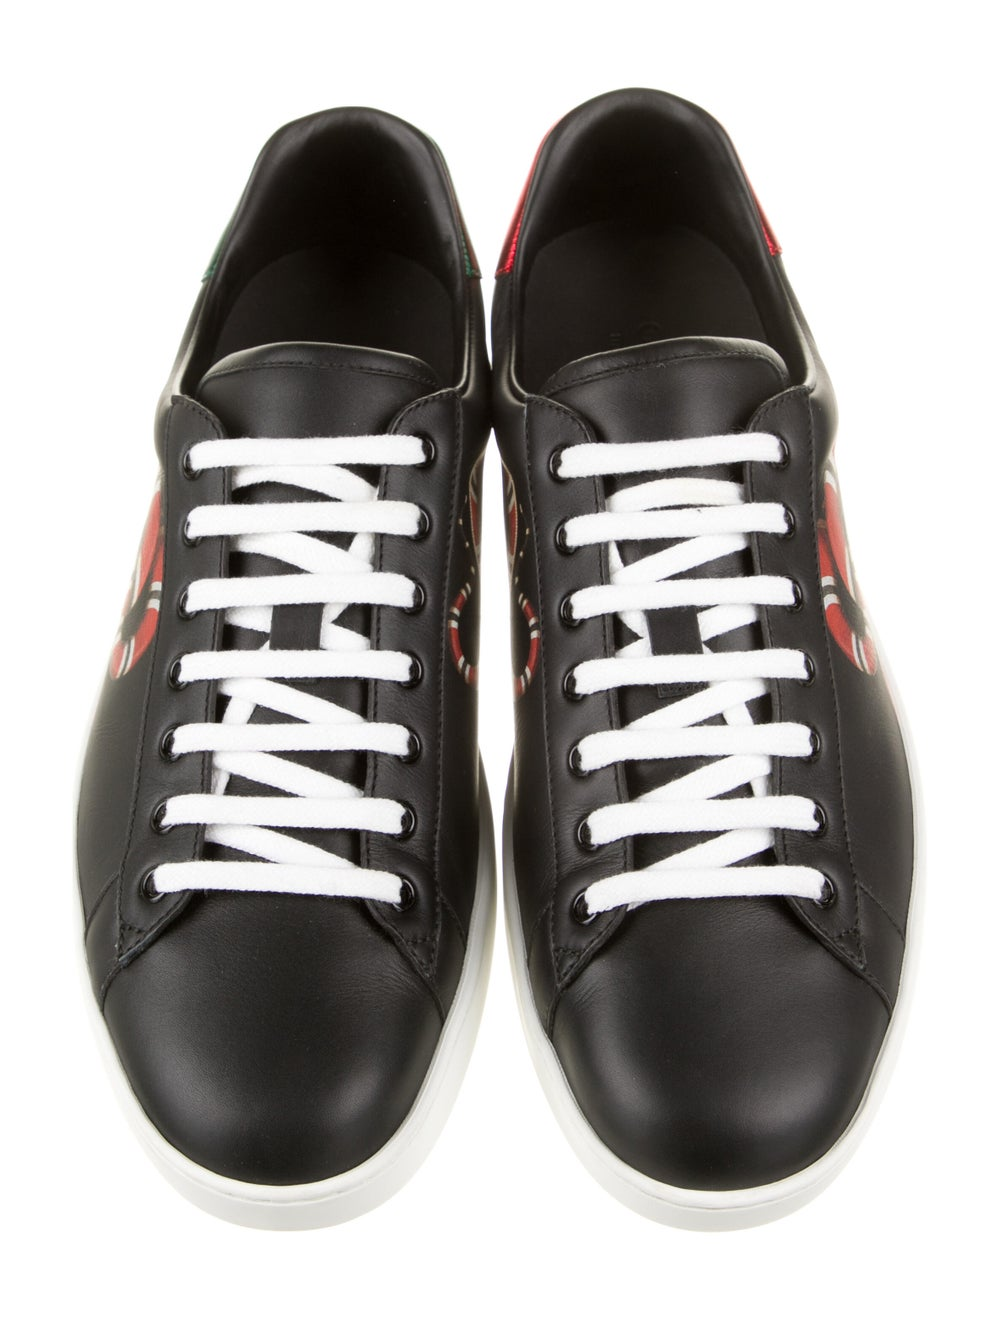 Gucci Kingsnake Ace Sneakers Black - image 3